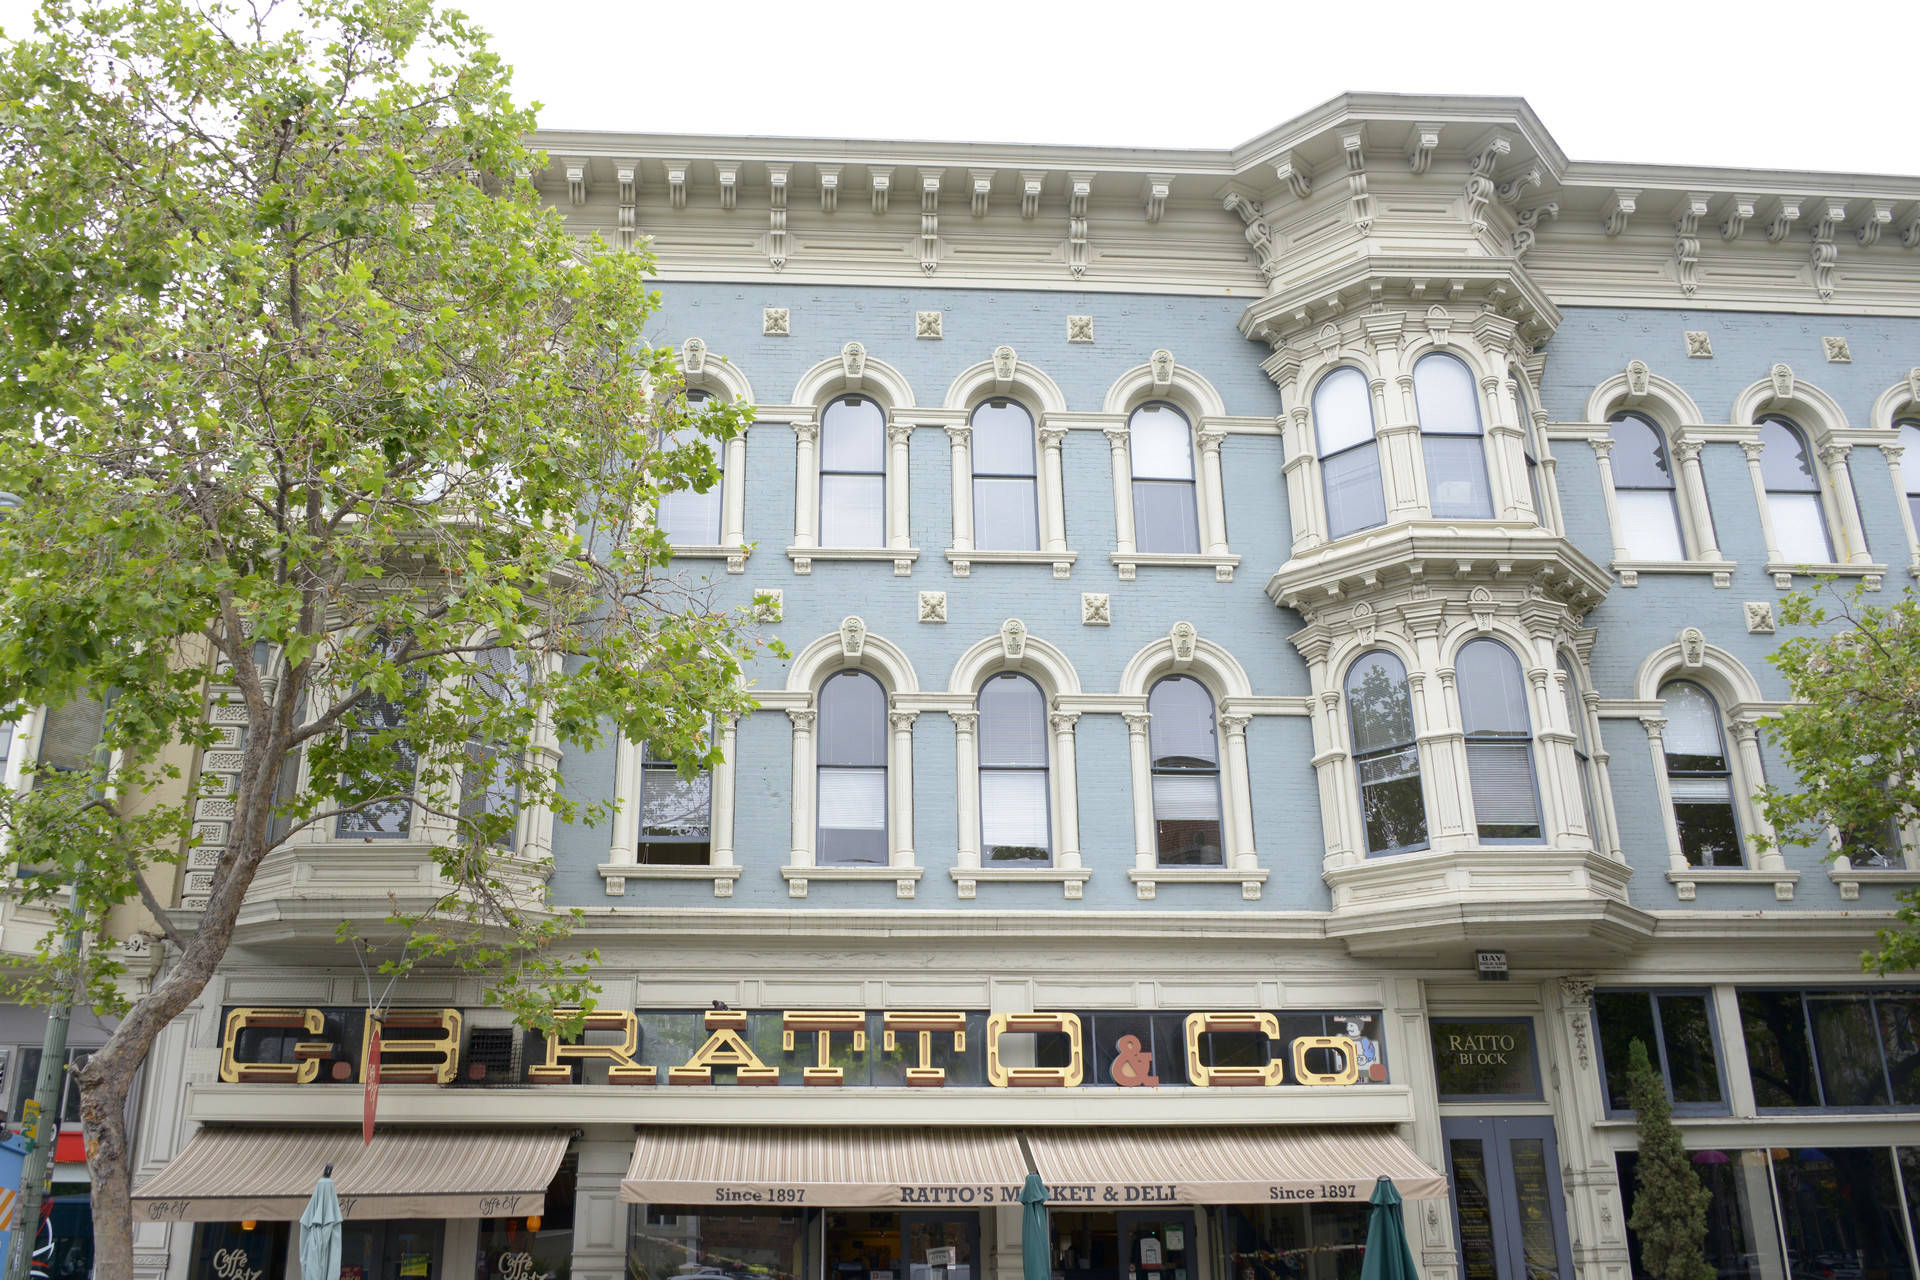 The Old Oakland neighborhood of downtown Oakland includes several Victorians that date back to the 1870s. Stephanie Lister/KQED